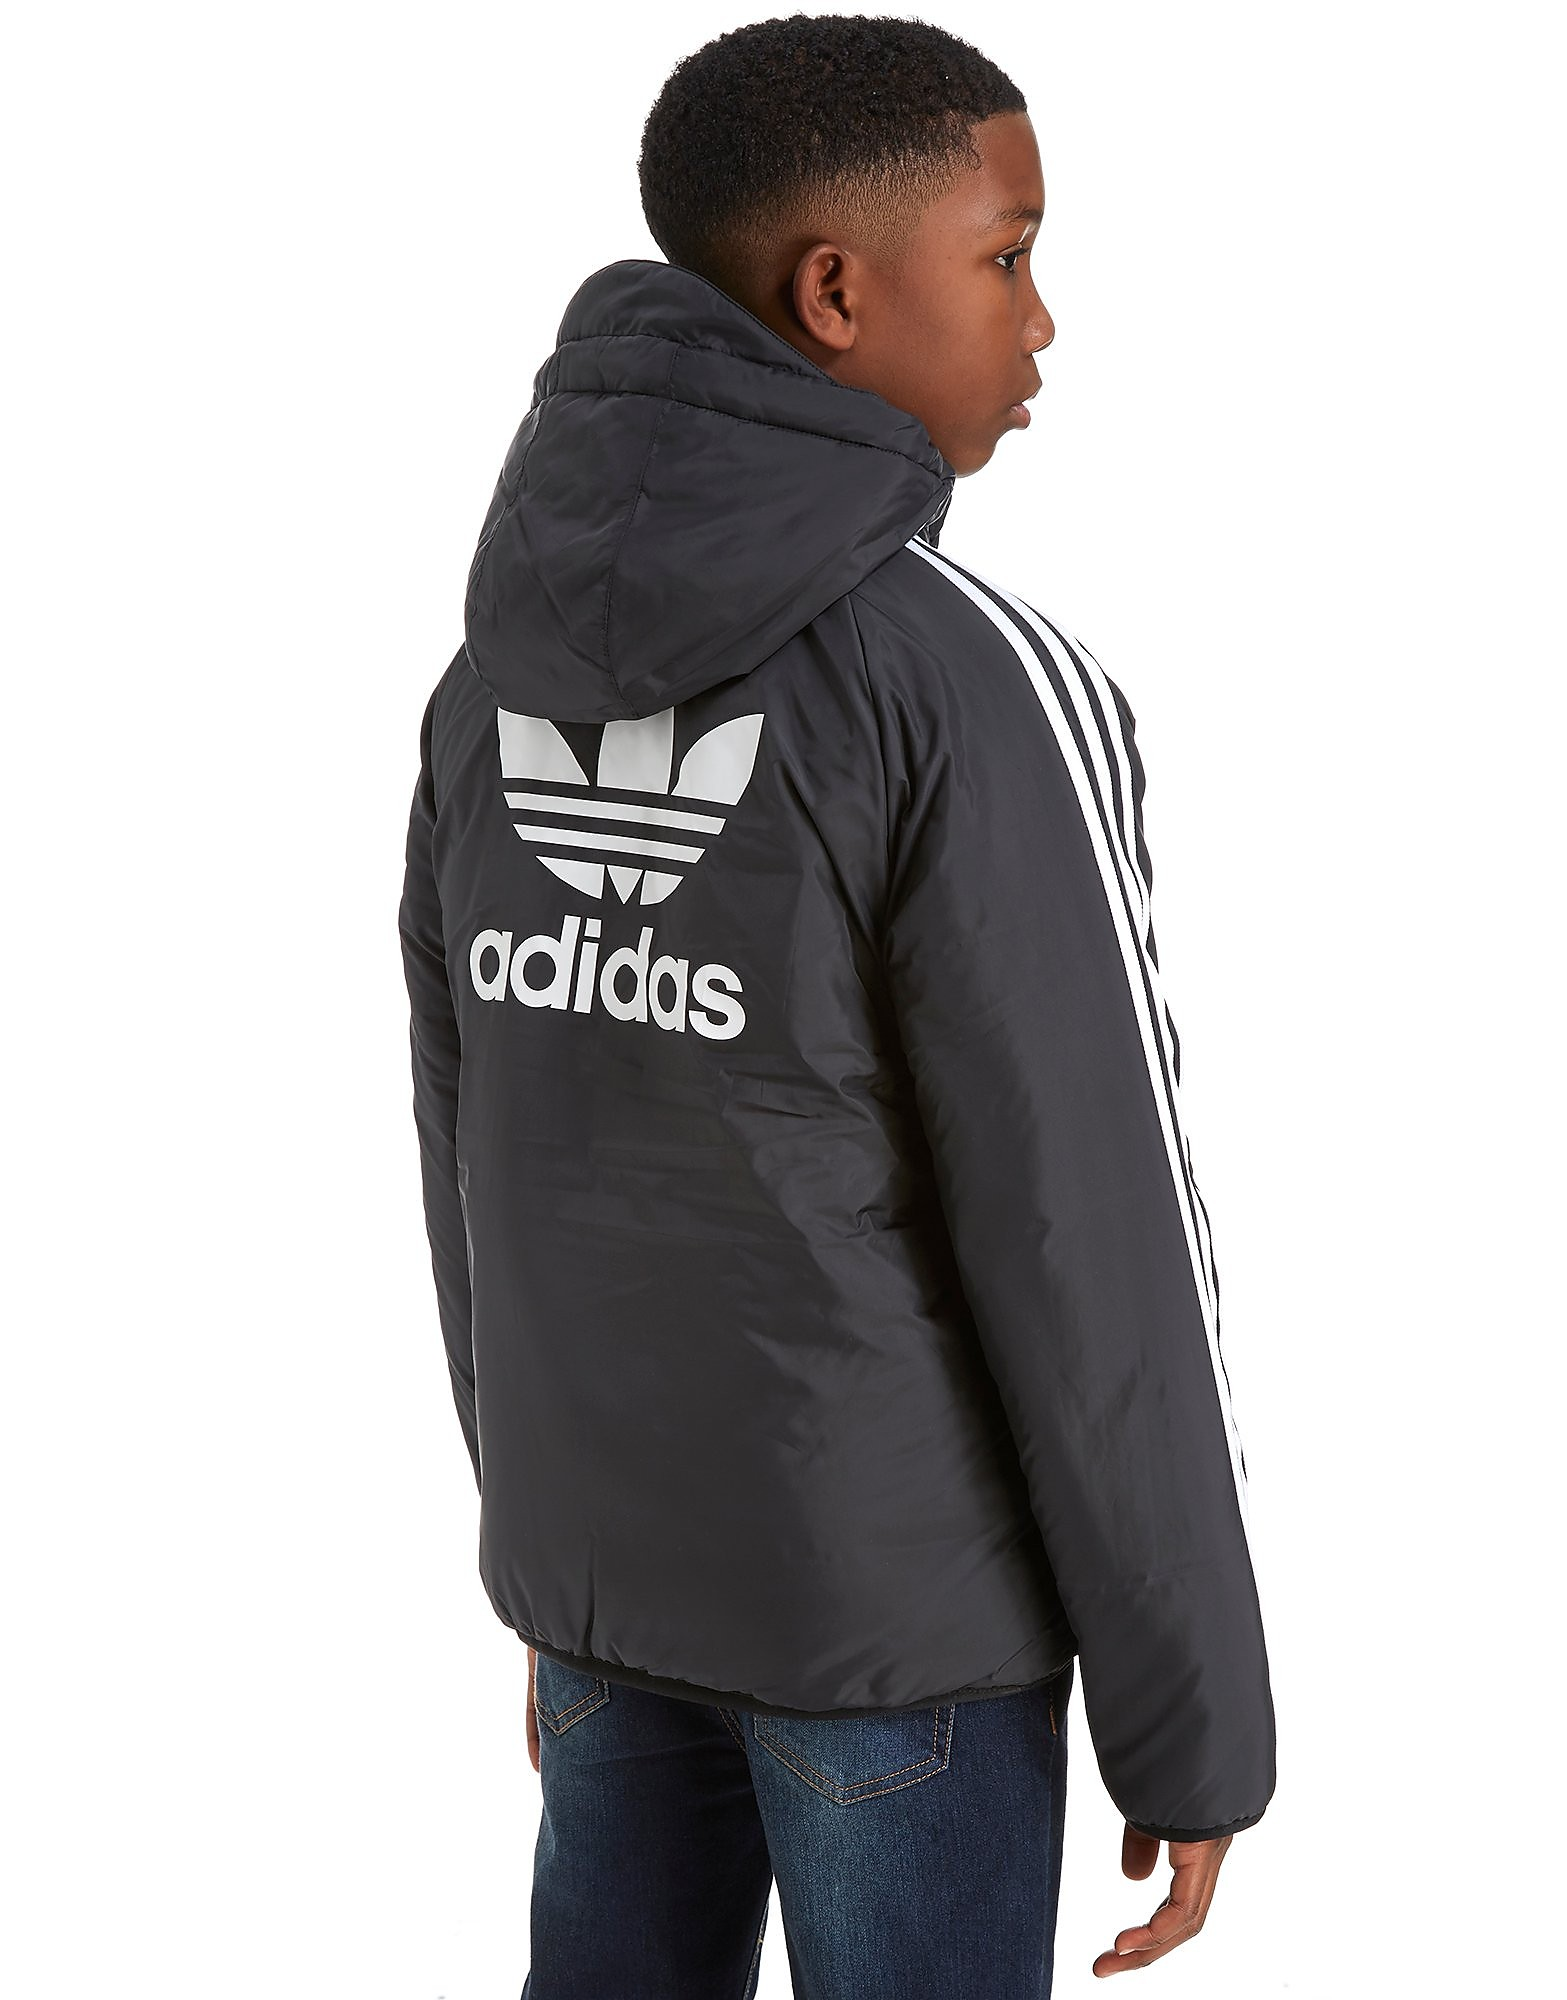 adidas Originals Original Padded Jacket